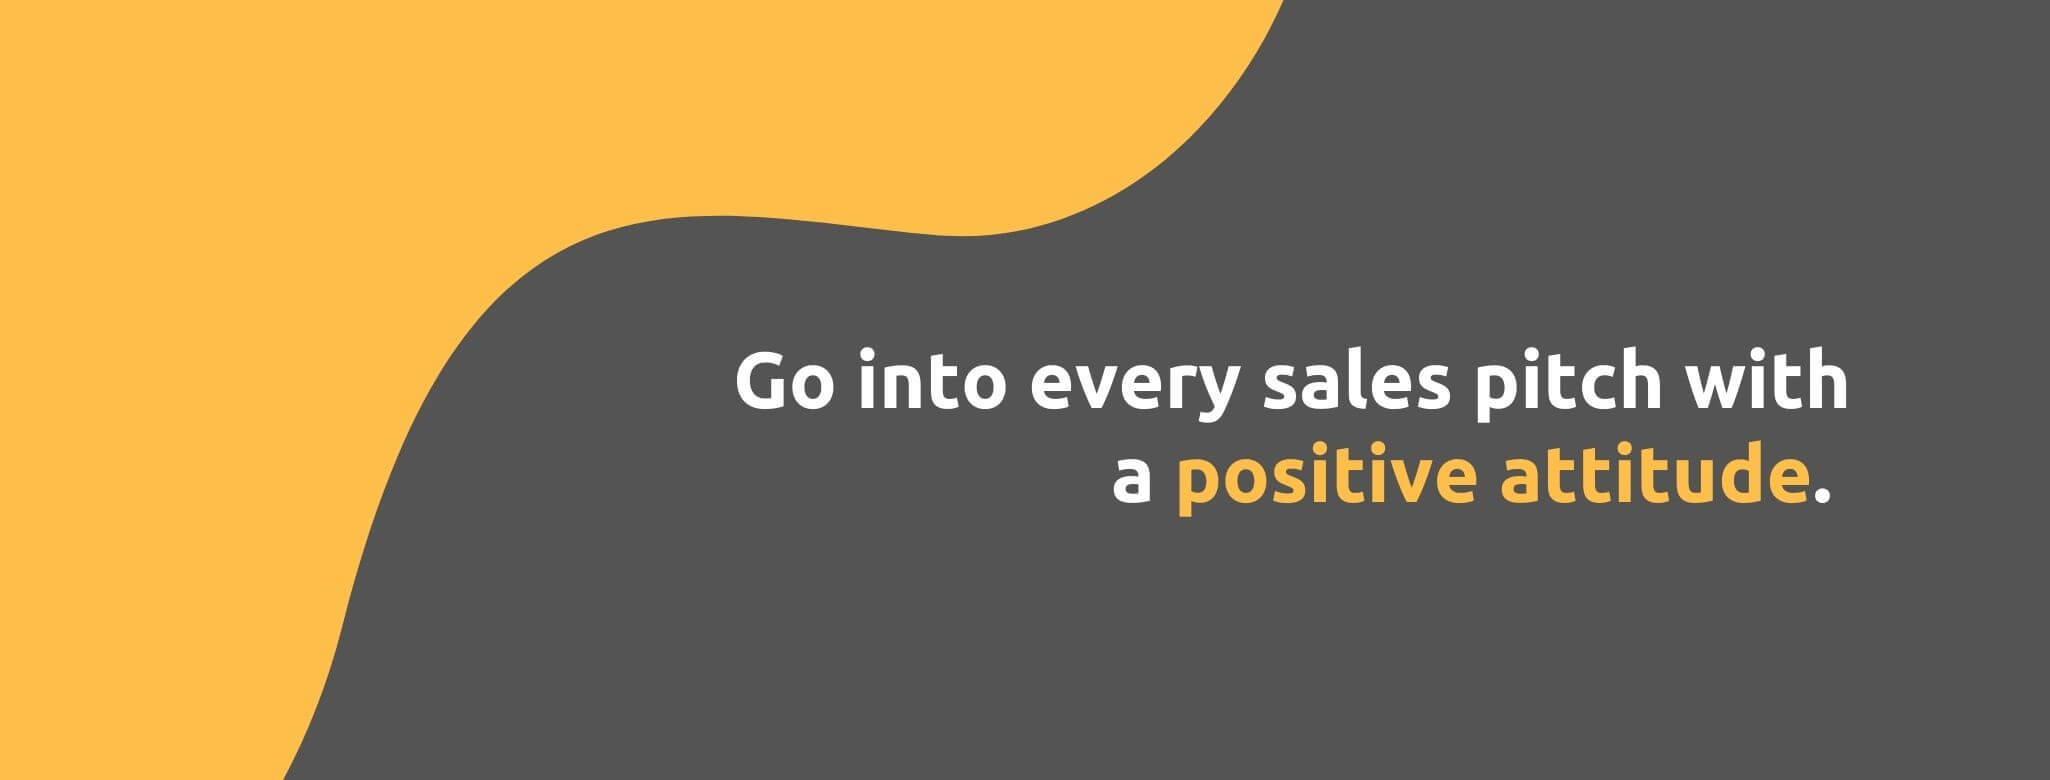 Stay Positive - 19 Ways to Conquer Fear of Rejection in Sales - Replyco Helpdesk Software for eCommerce